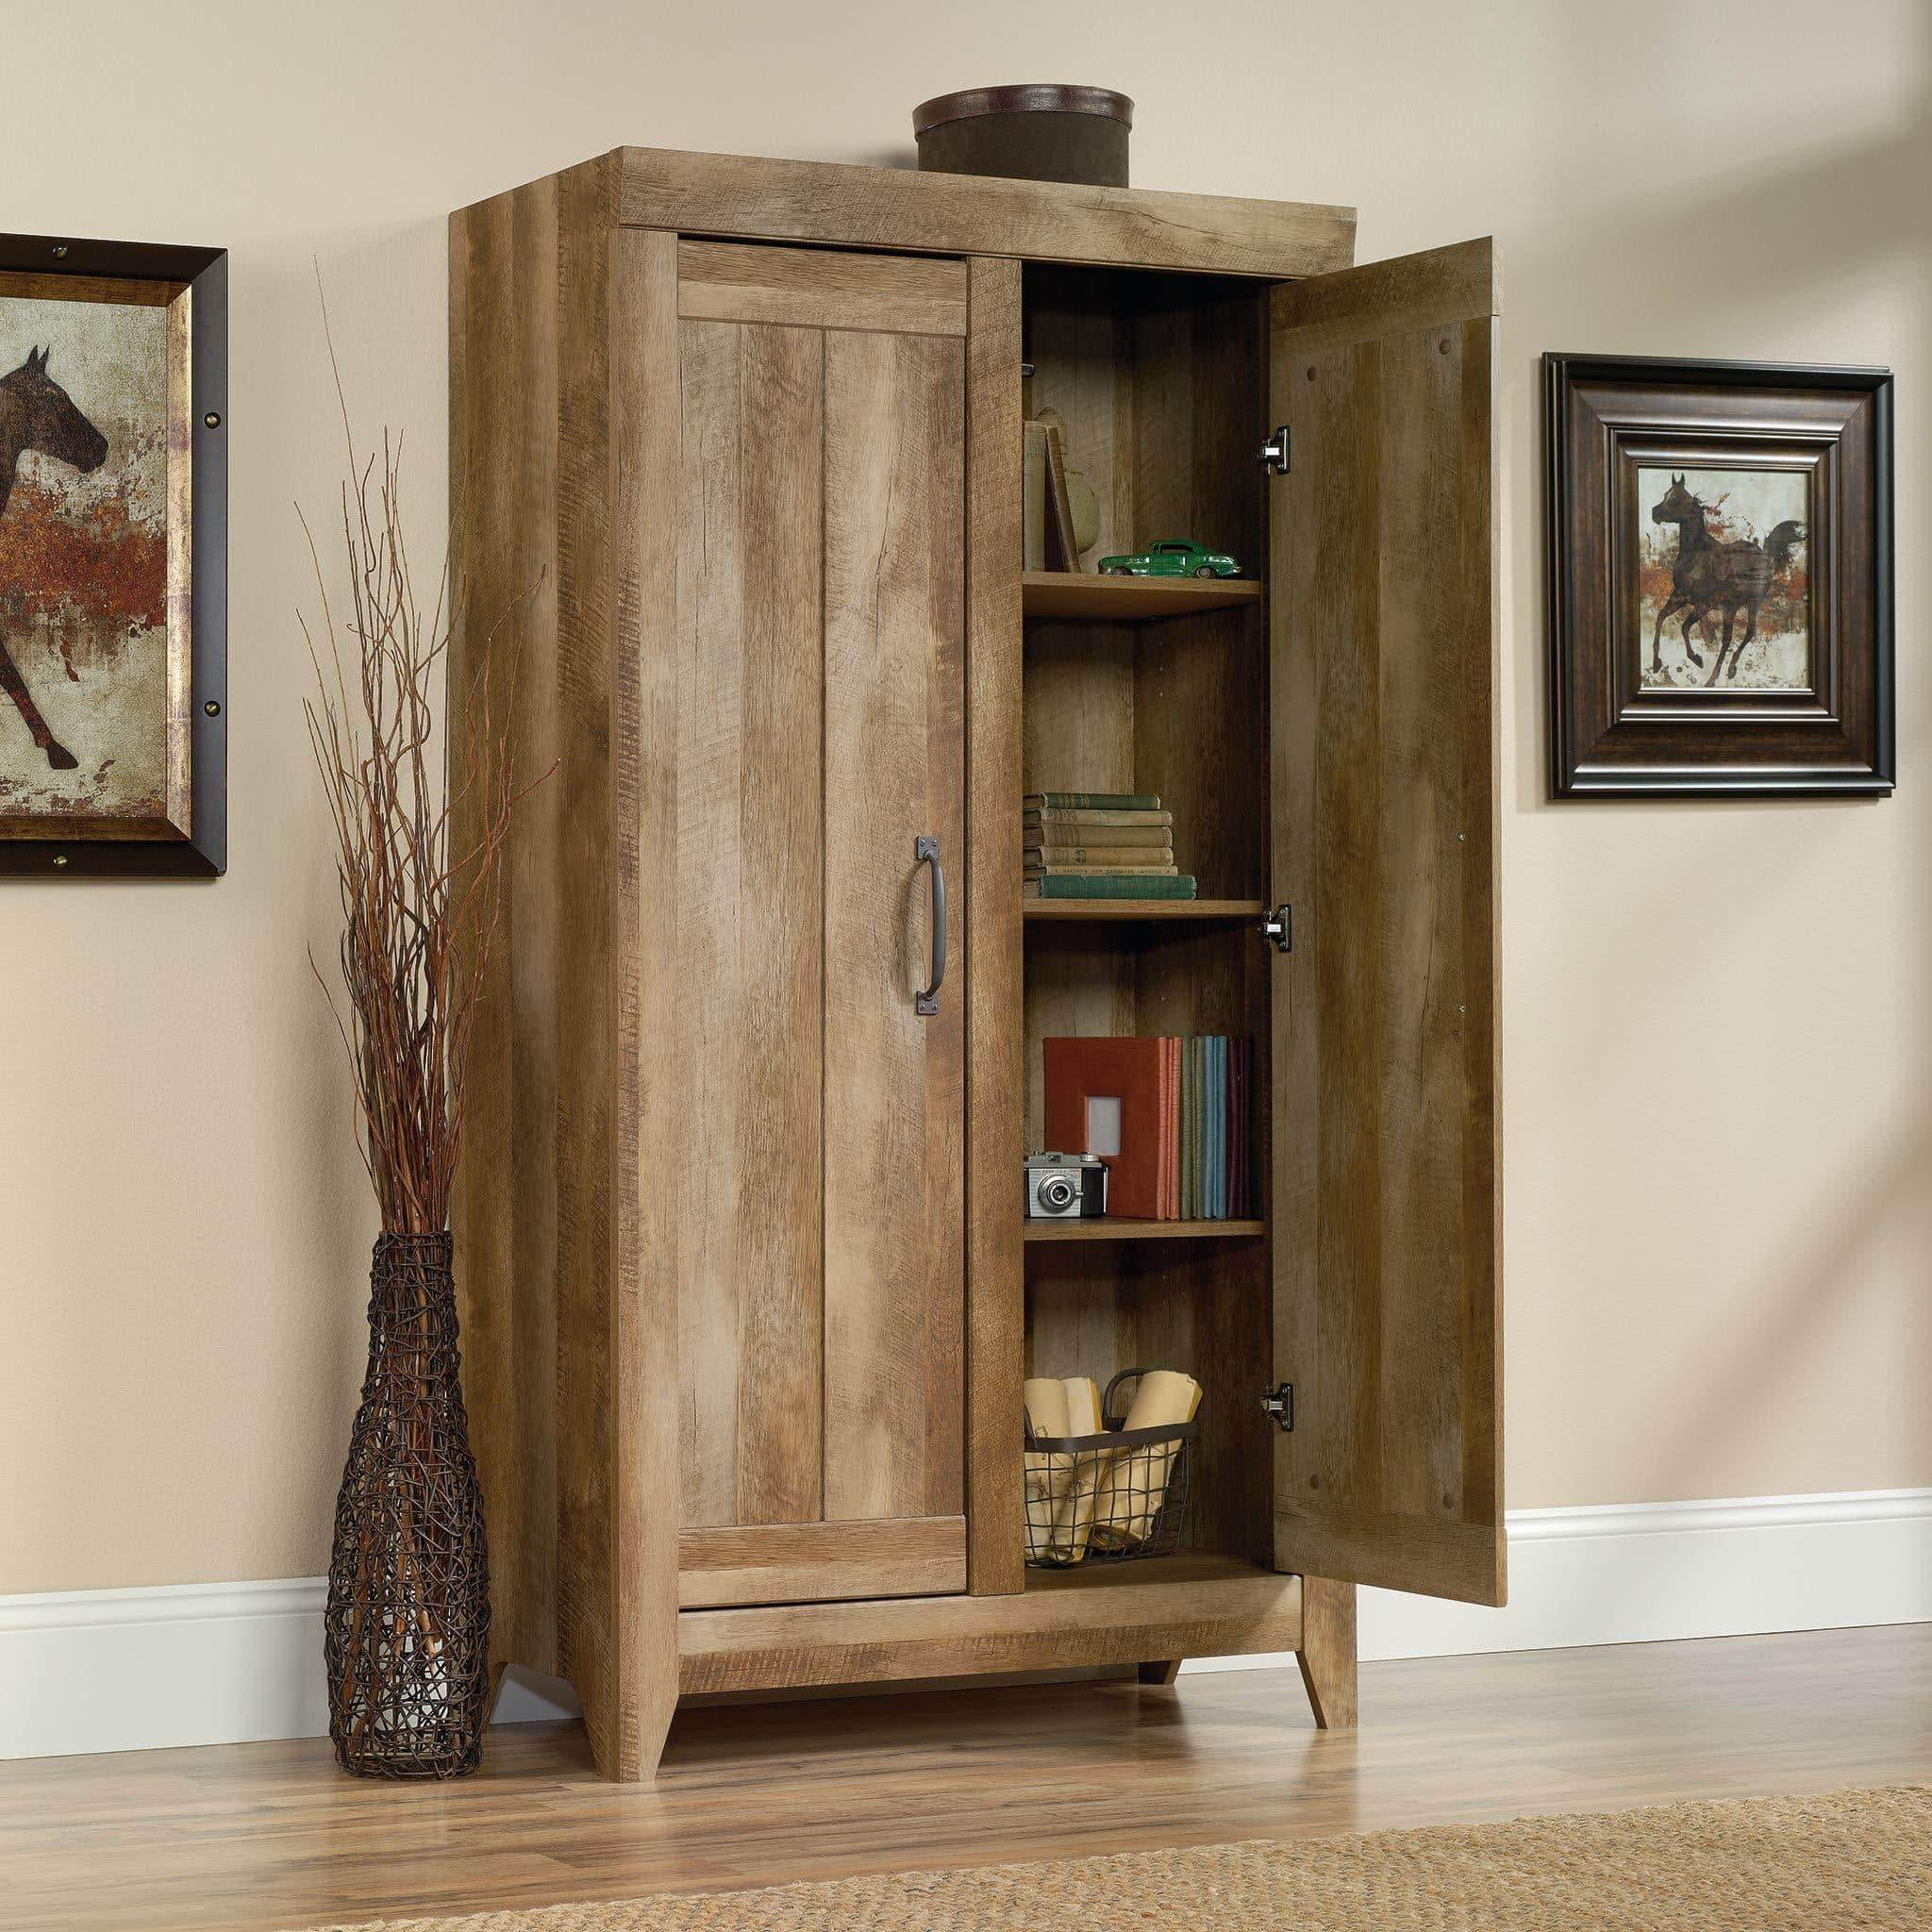 Discover the sauder 418141 adept storage wide storage cabinet l 38 94 x w 16 77 x h 70 98 craftsman oak finish